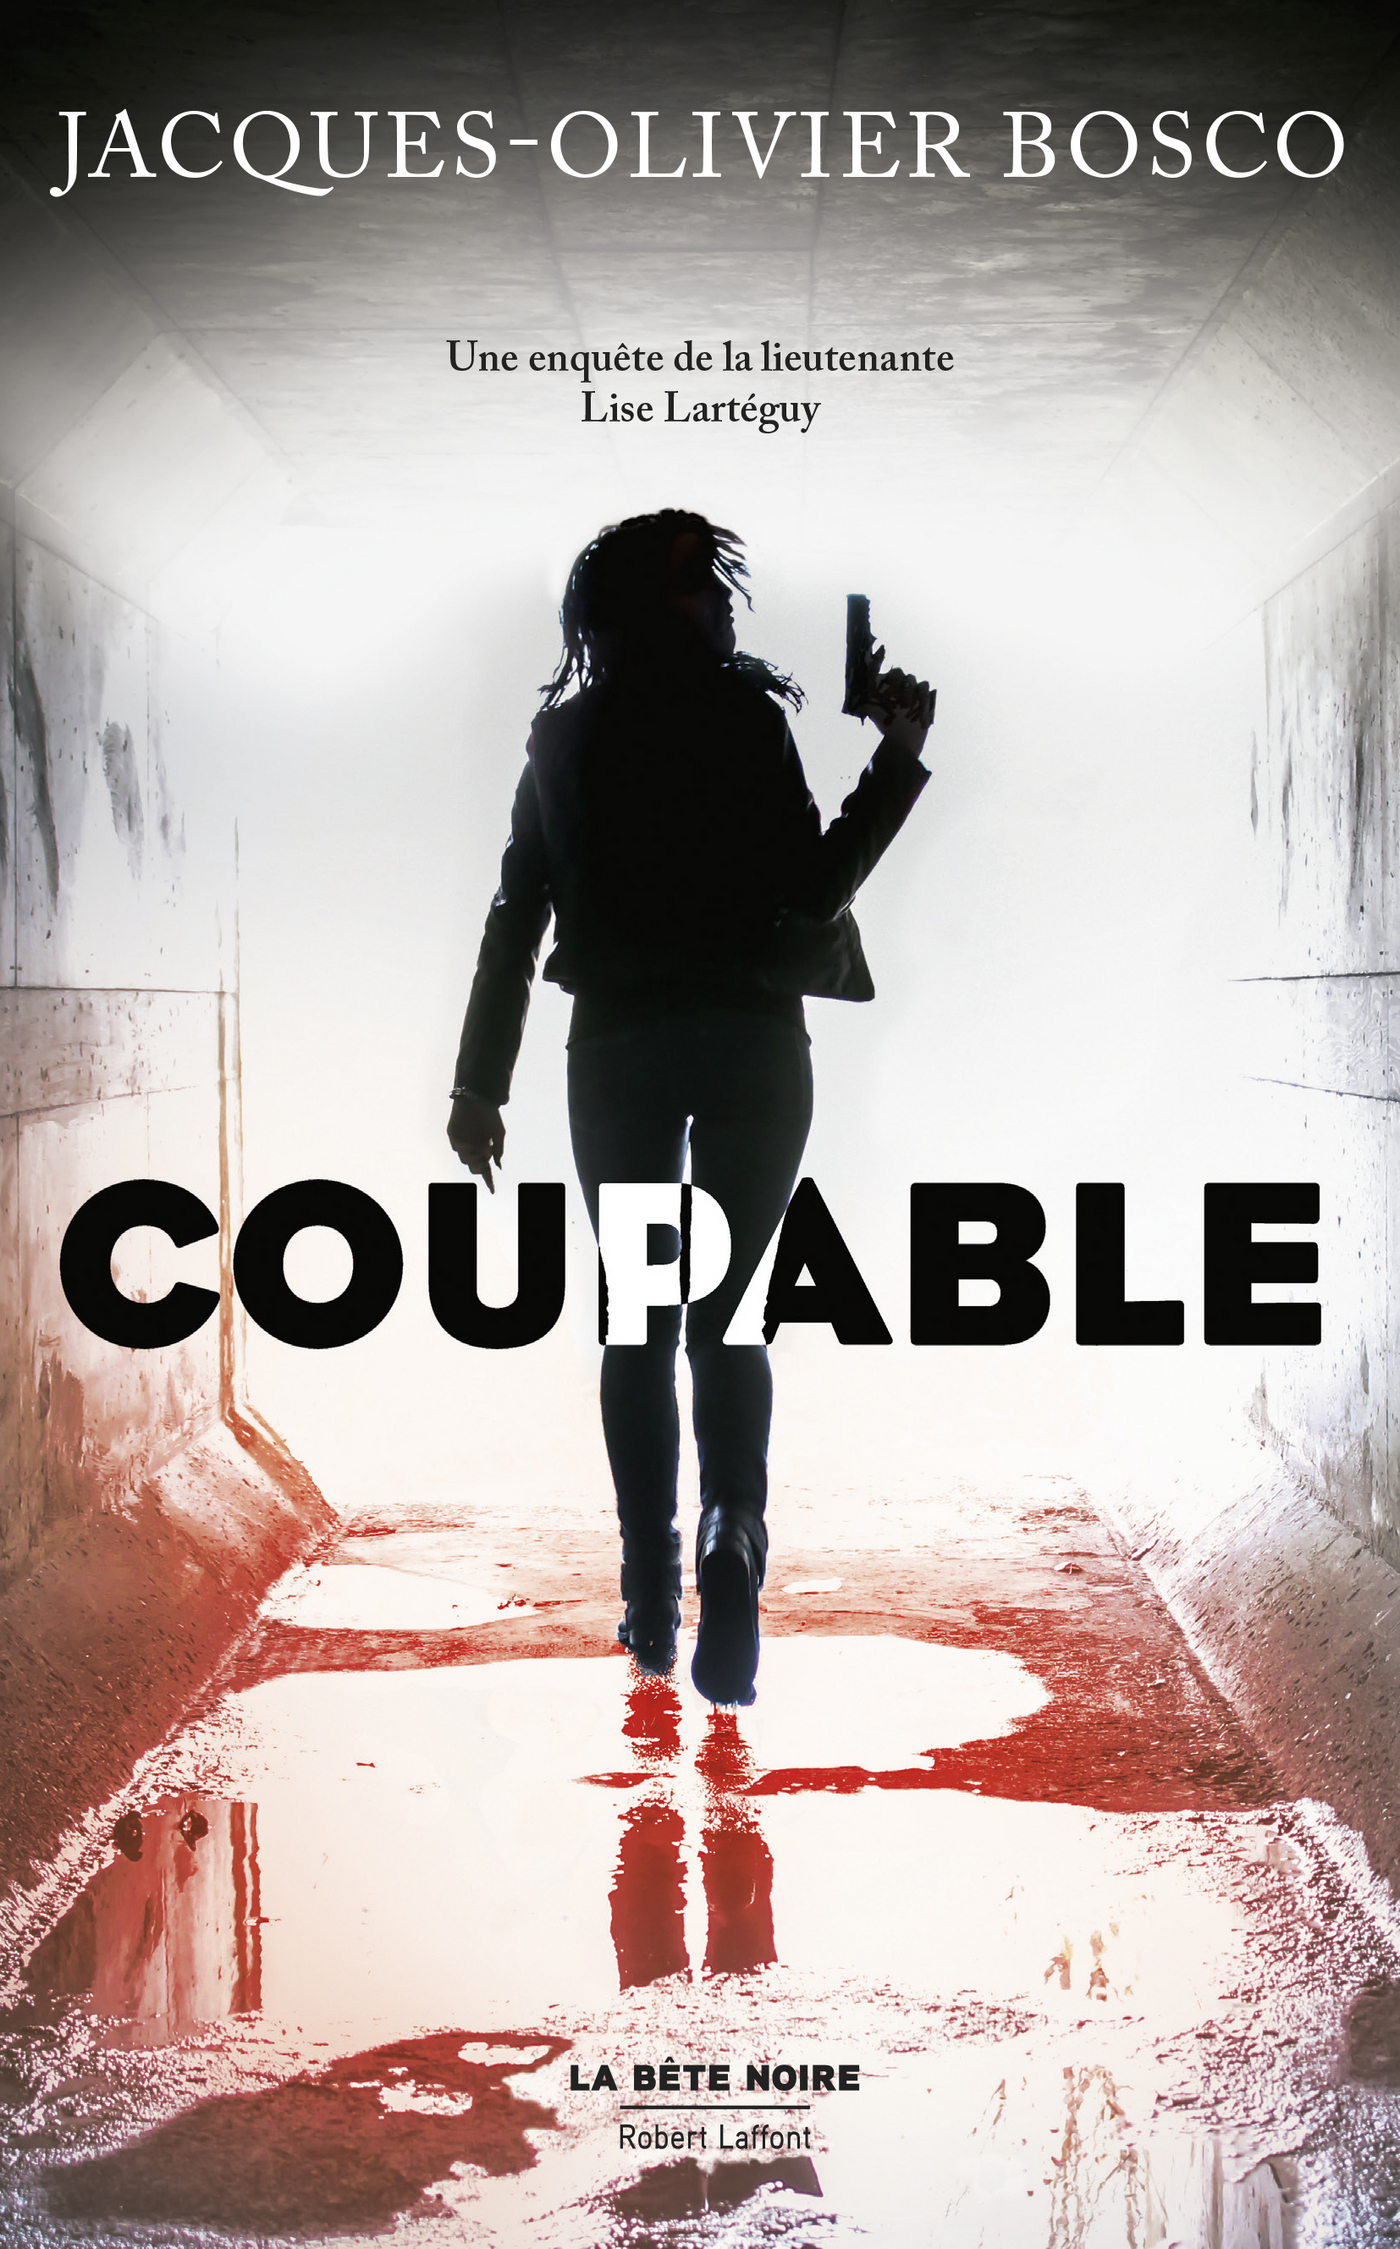 Coupable | BOSCO, Jacques-Olivier